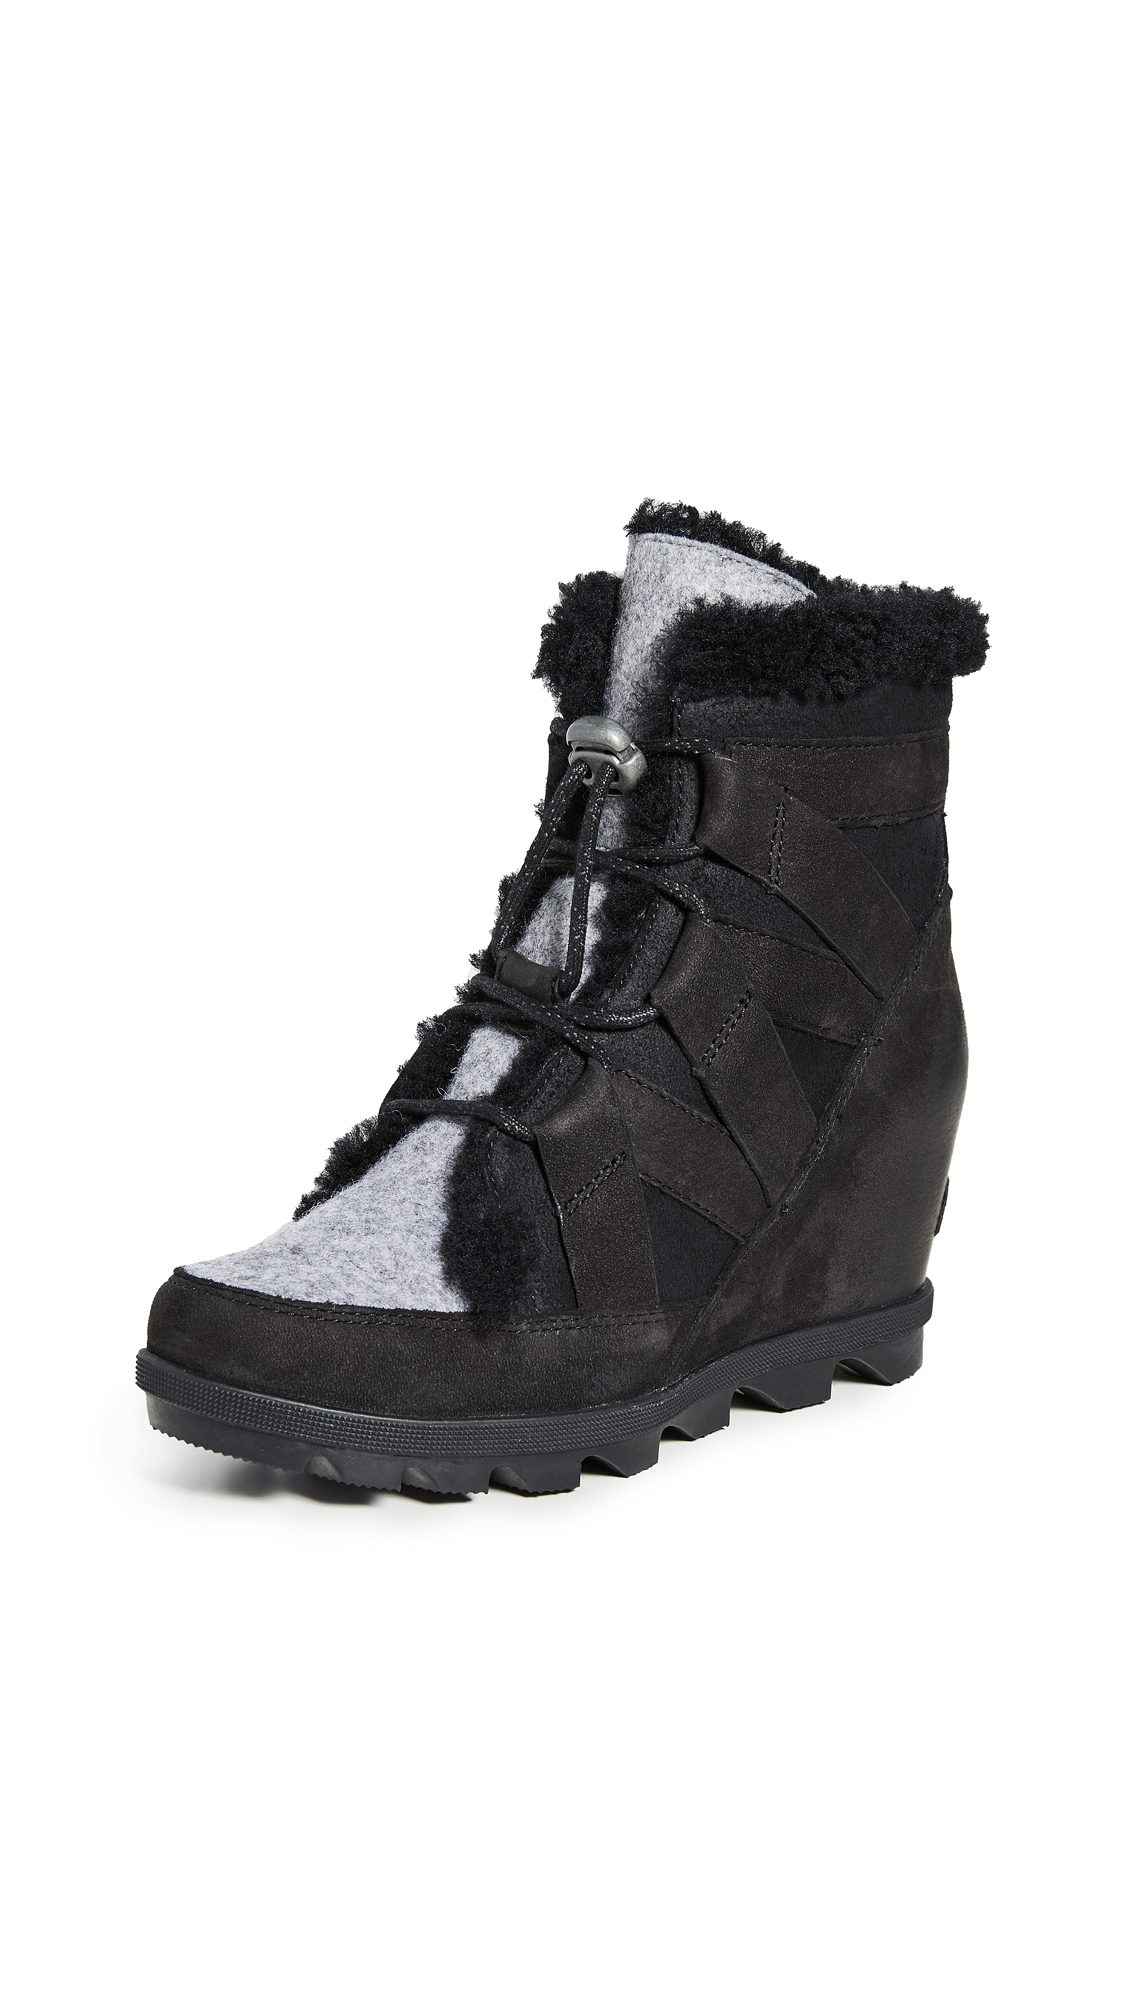 Sorel Joan of Arctic Wedge Boots - 30% Off Sale